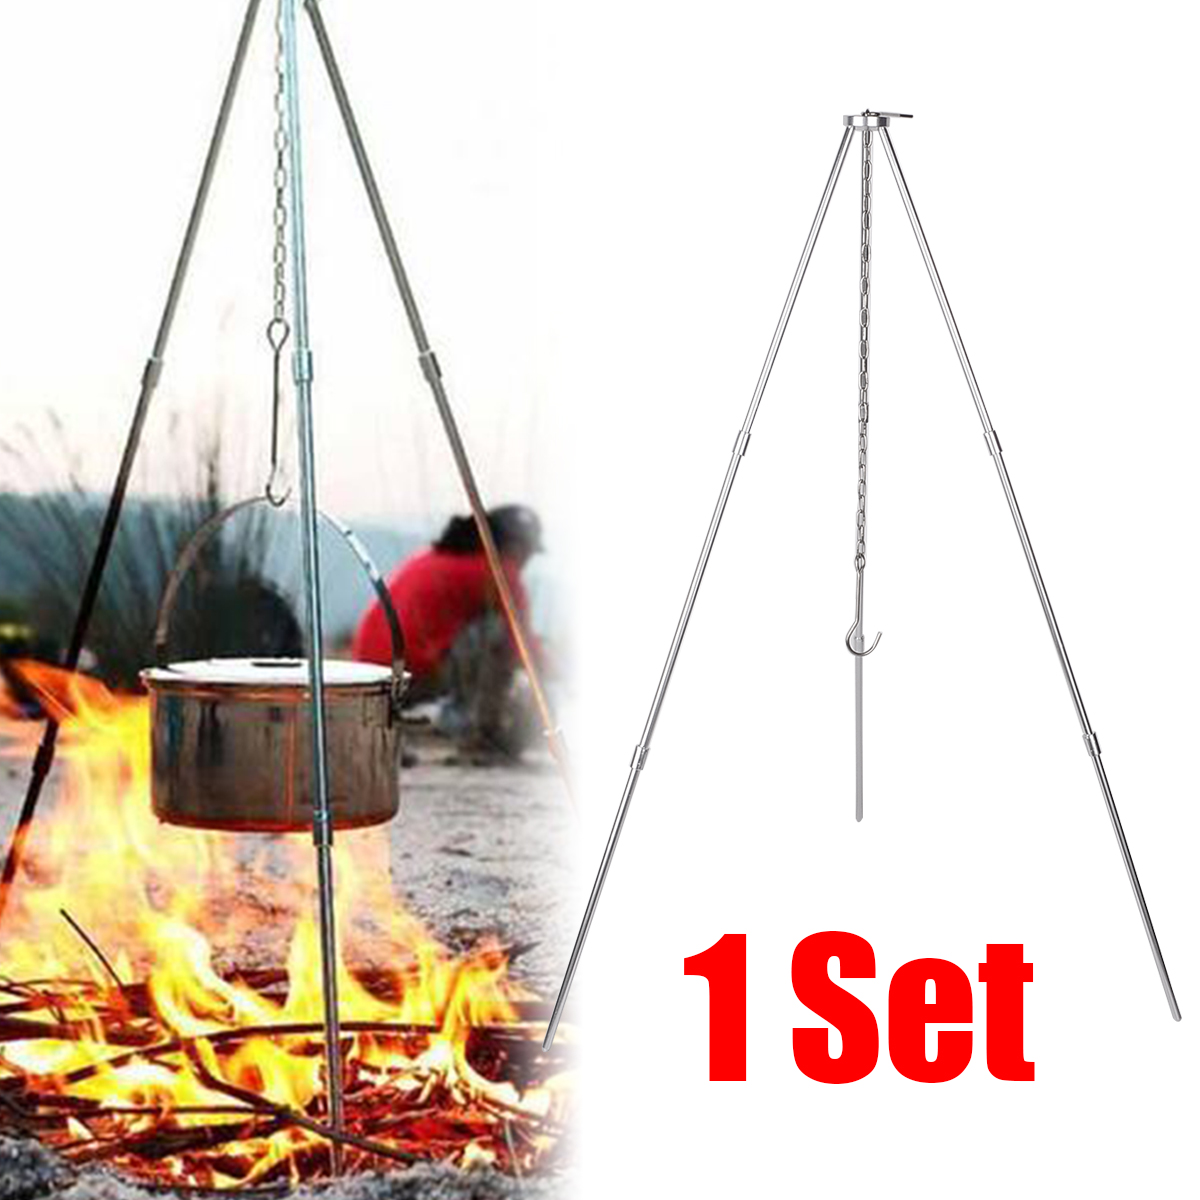 BBQ Grill Aluminum Tripod Portable Camping Picnic Cooking Tripod Hanging Pot For Outdoor Garden Camping Picnic Cooking-in Outdoor Stoves from Sports & Entertainment